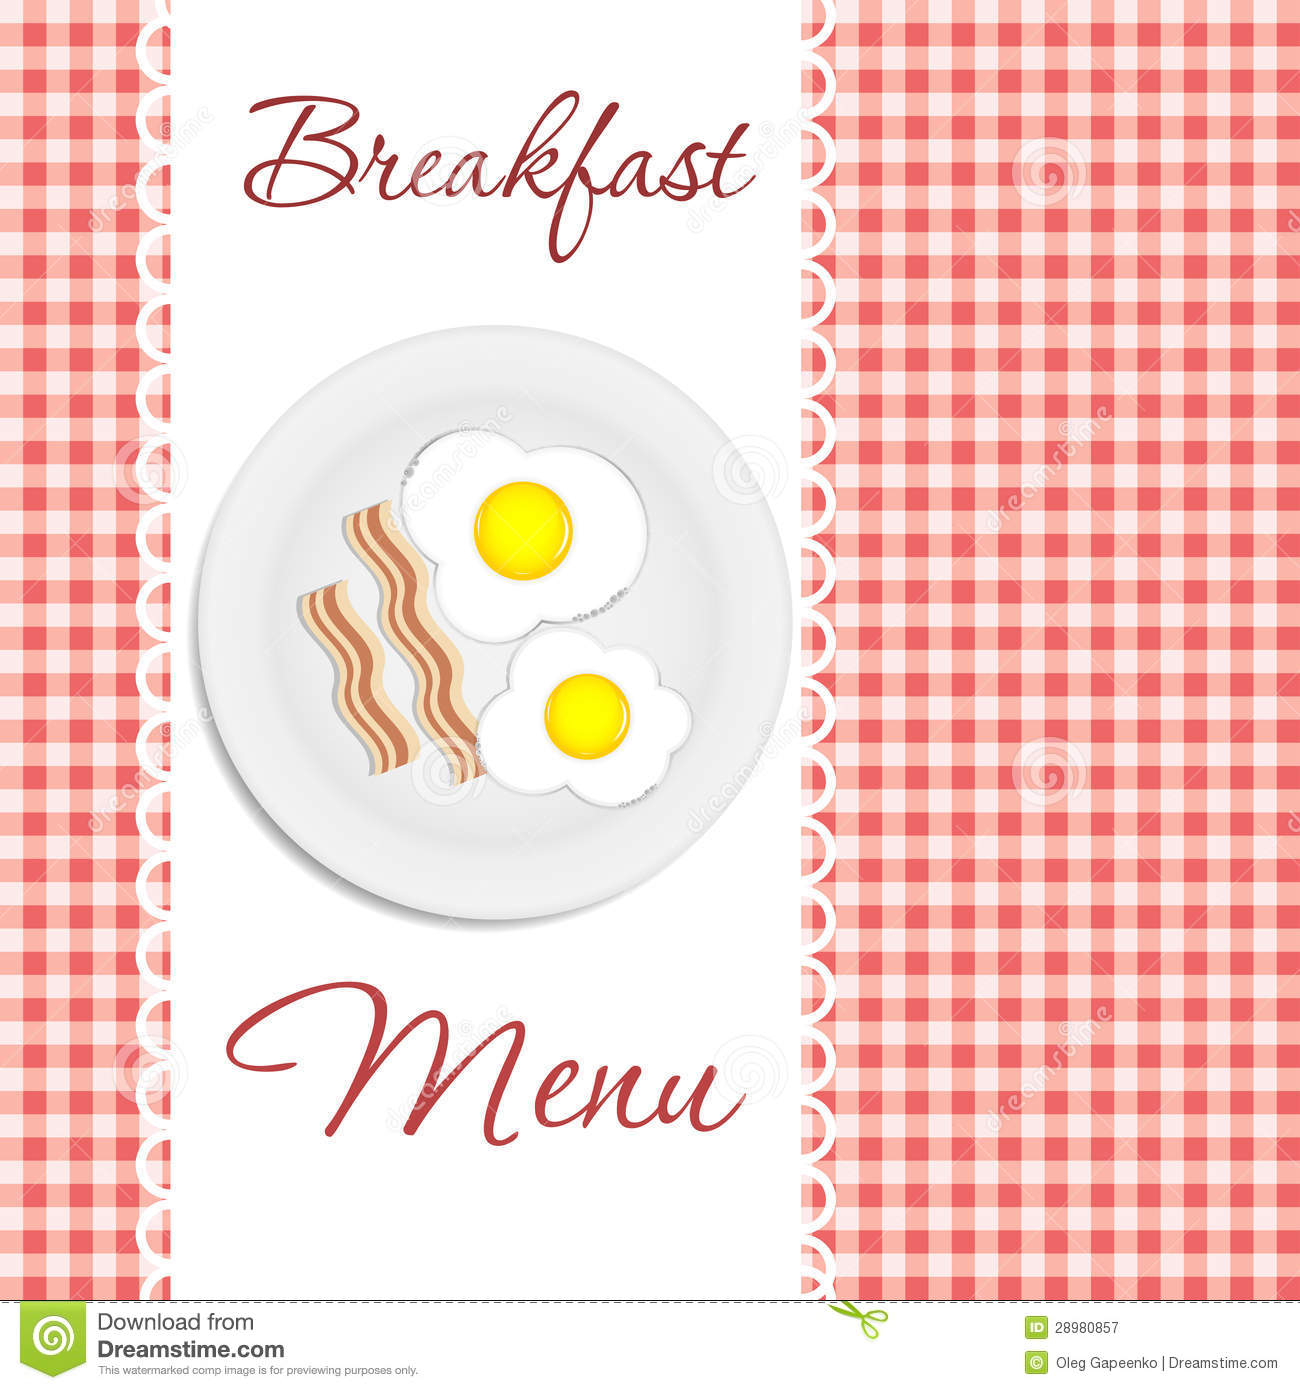 Breakfast Menu Vector Illustration  Breakfast Menu Template